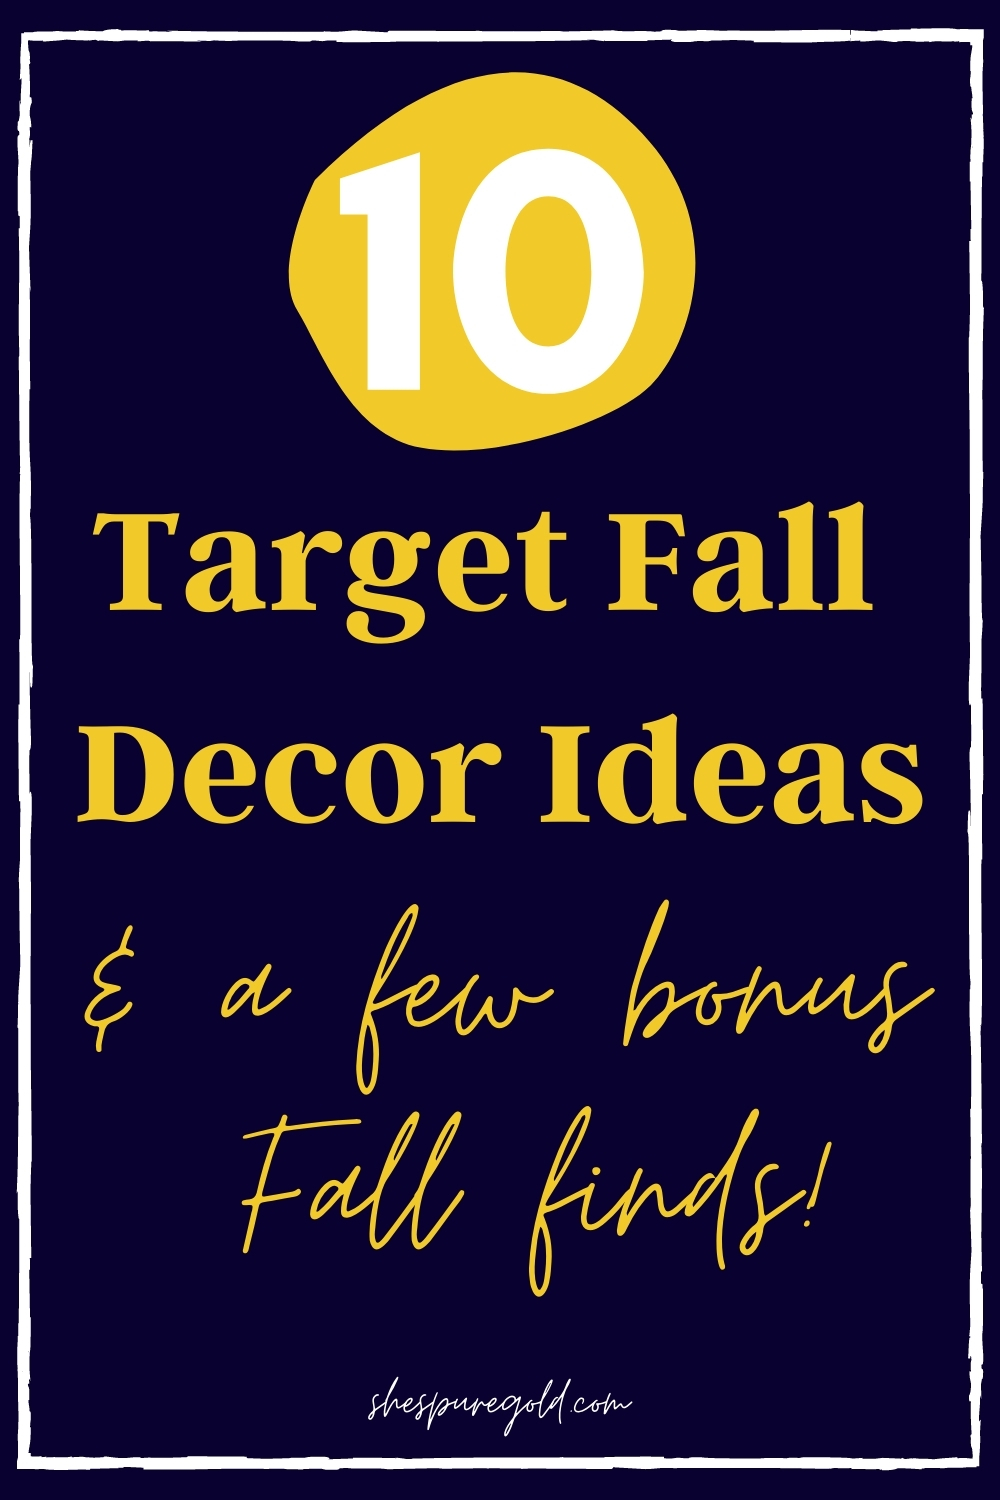 10 Rustic Fall Decor Finds at Target